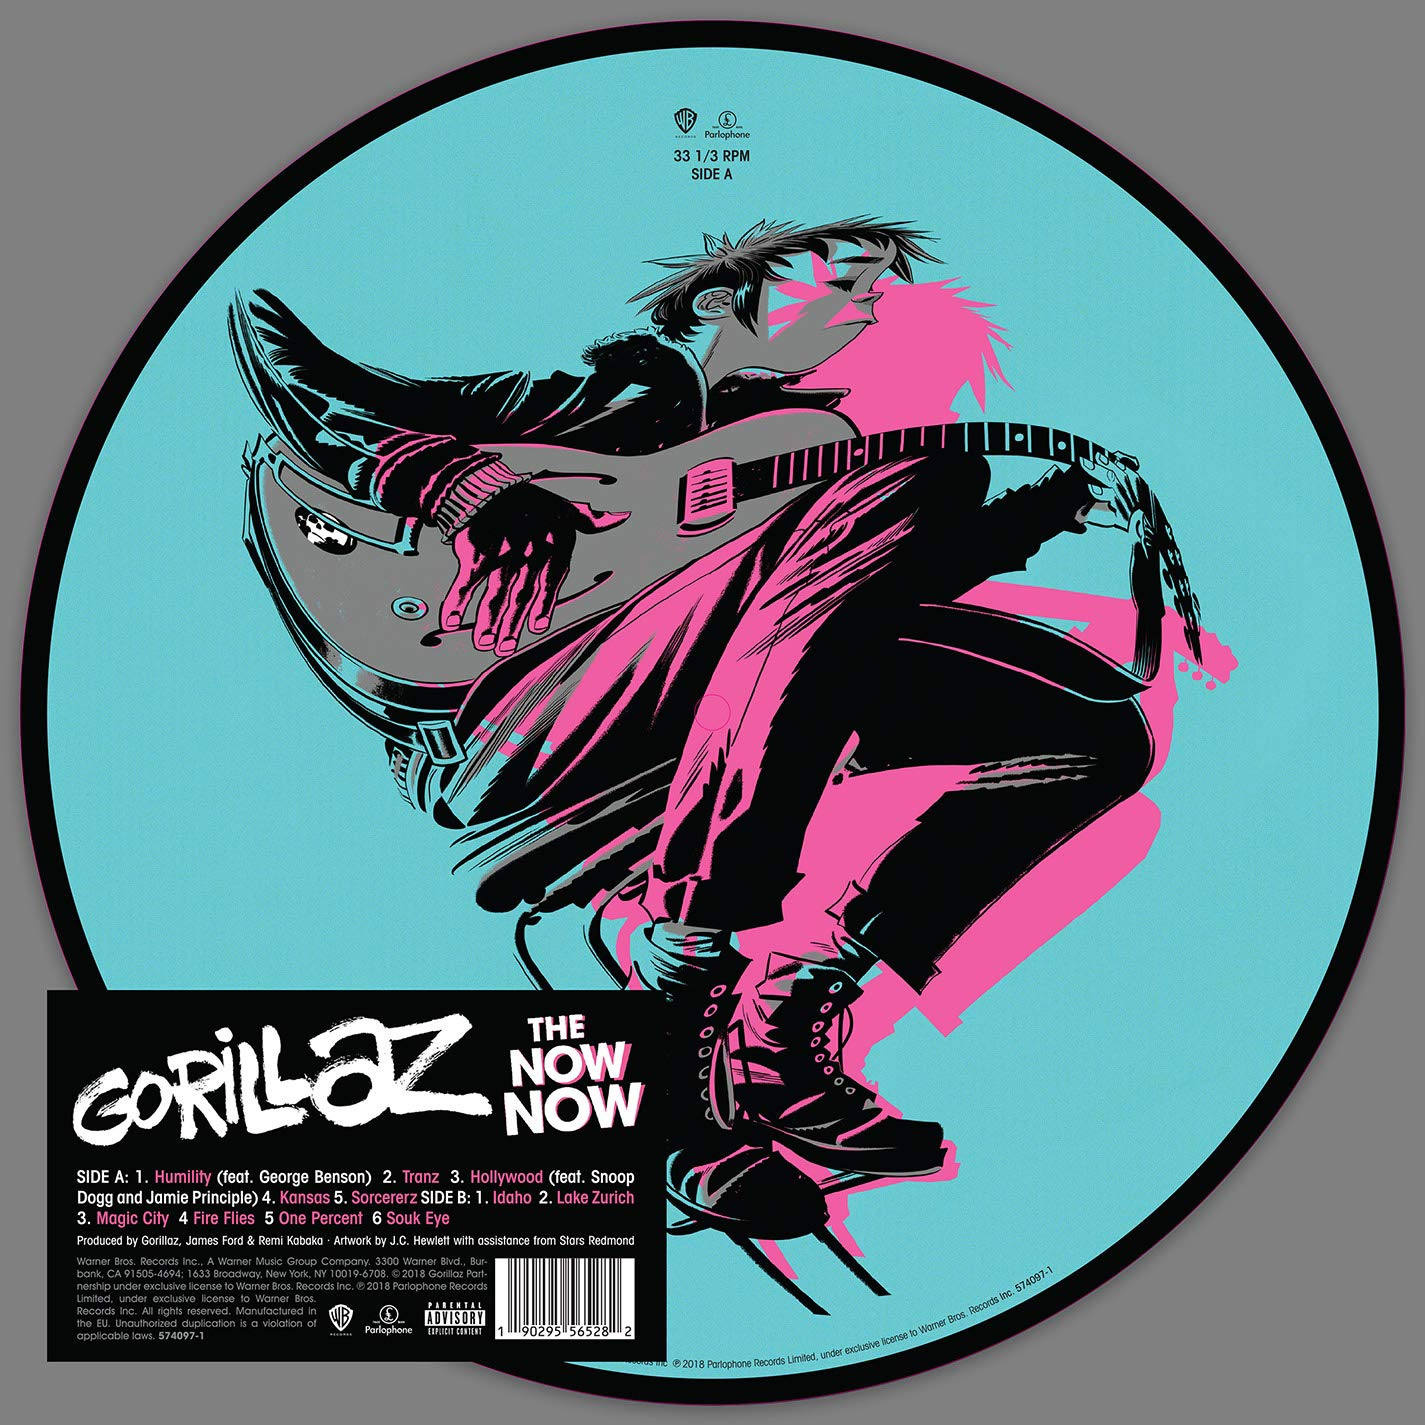 Gorillaz - The Now Now Picture